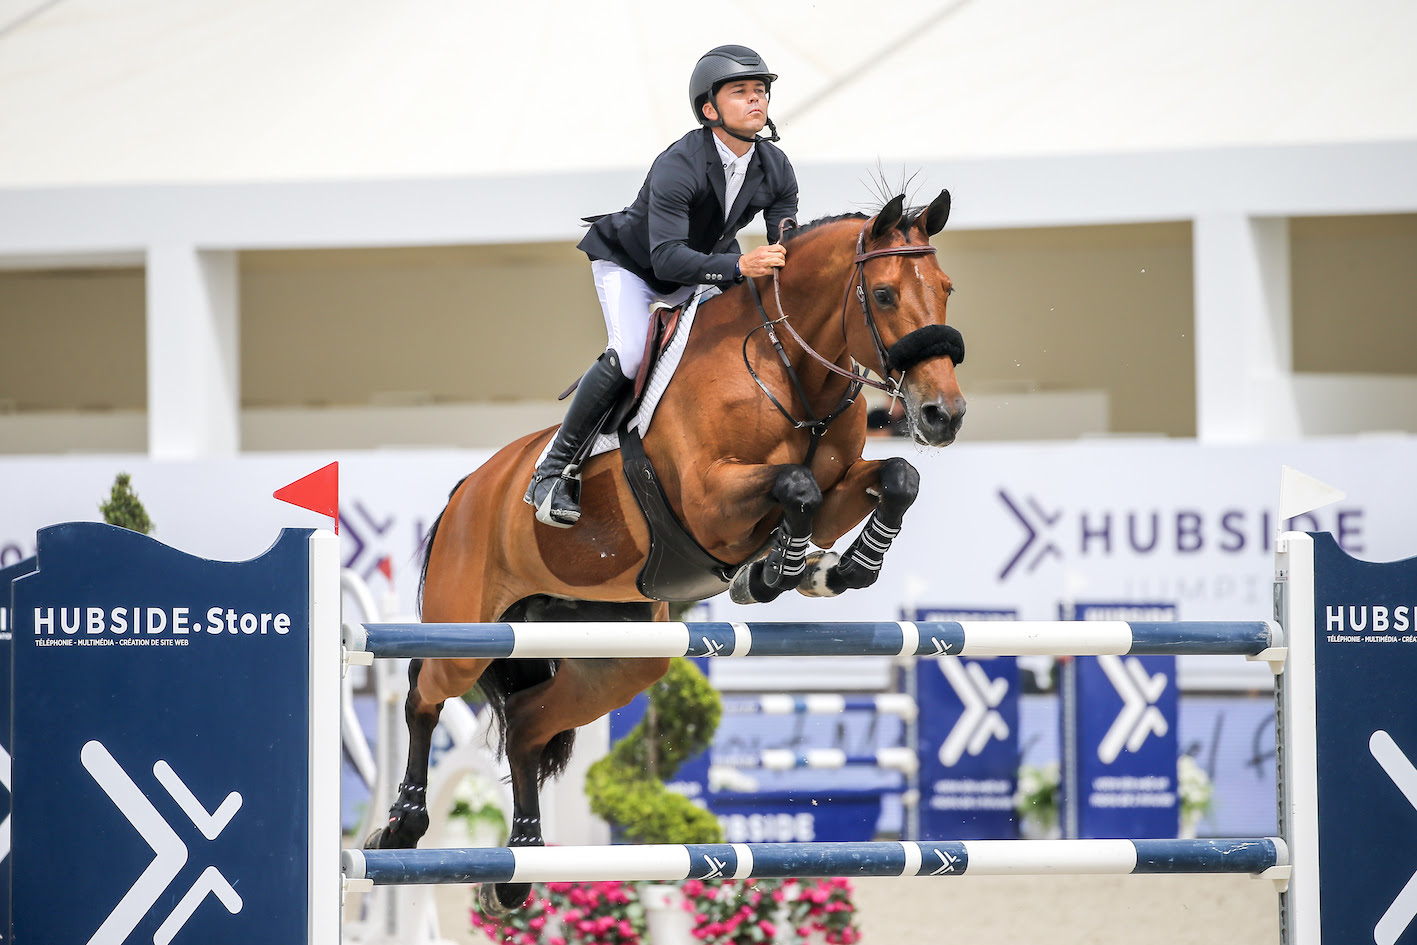 """Kent Farrington: """" I really focused on Gazelle's natural speed, and I was extremely careful"""""""